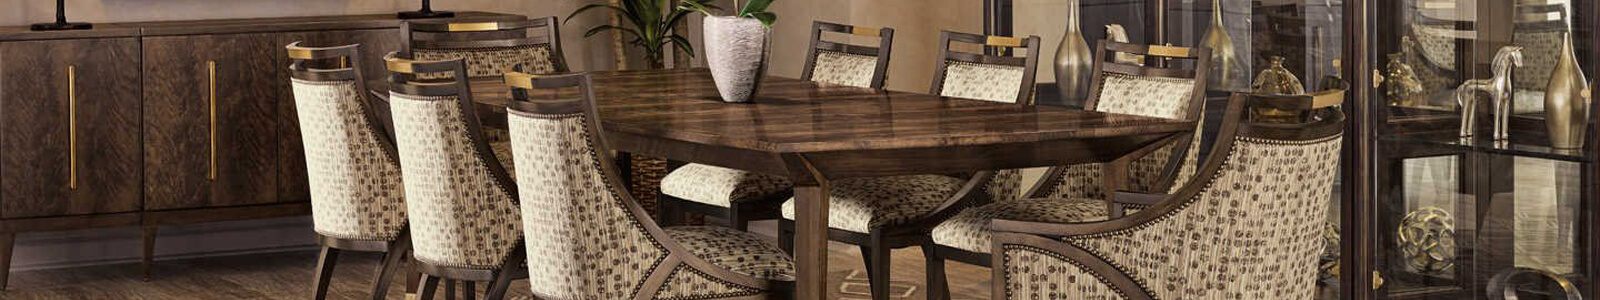 Carson Furniture by Marge Carson Banner